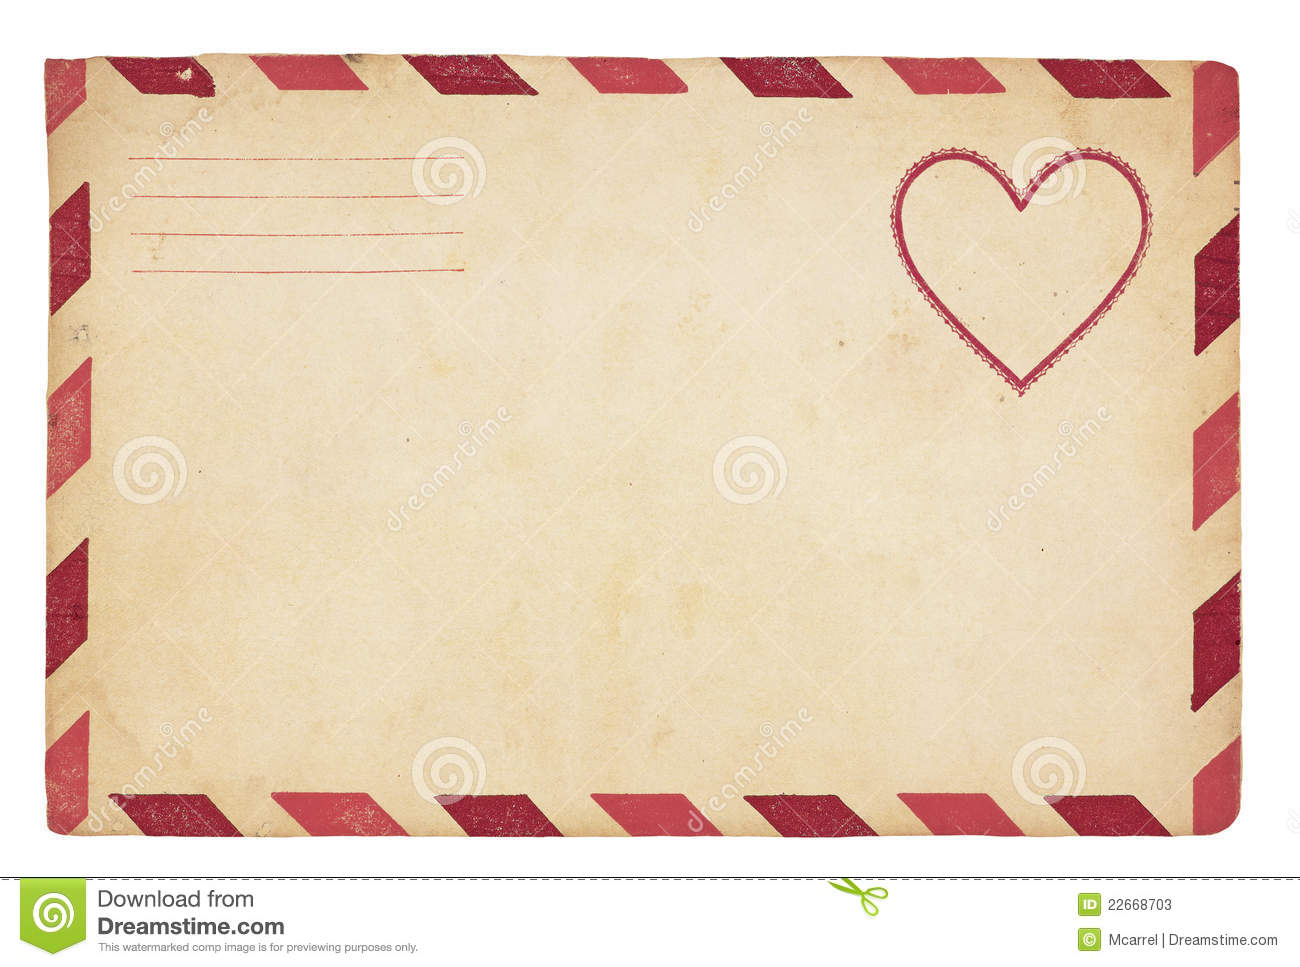 ... with red striped border. Isolated on white with clipping path